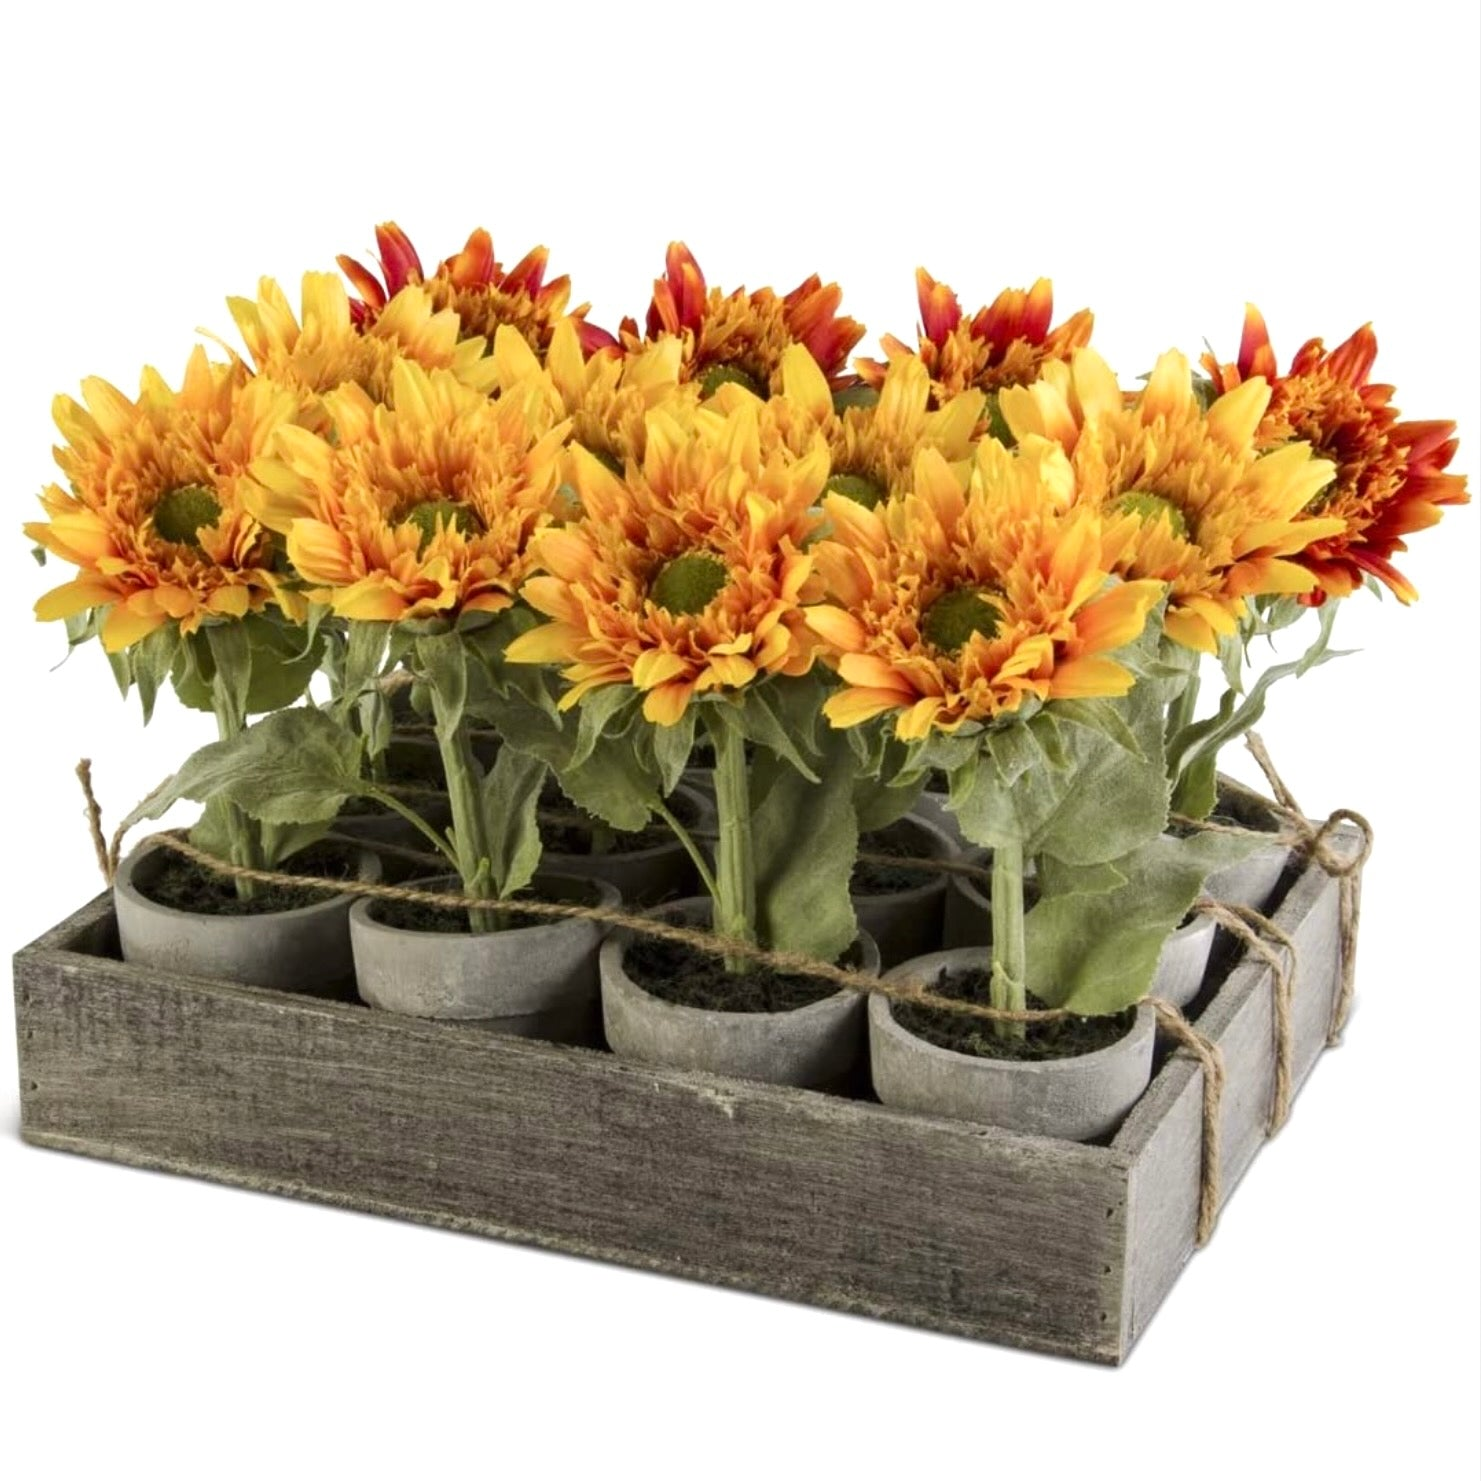 Assorted potted Sunflowers | Putti Fine Furnishings